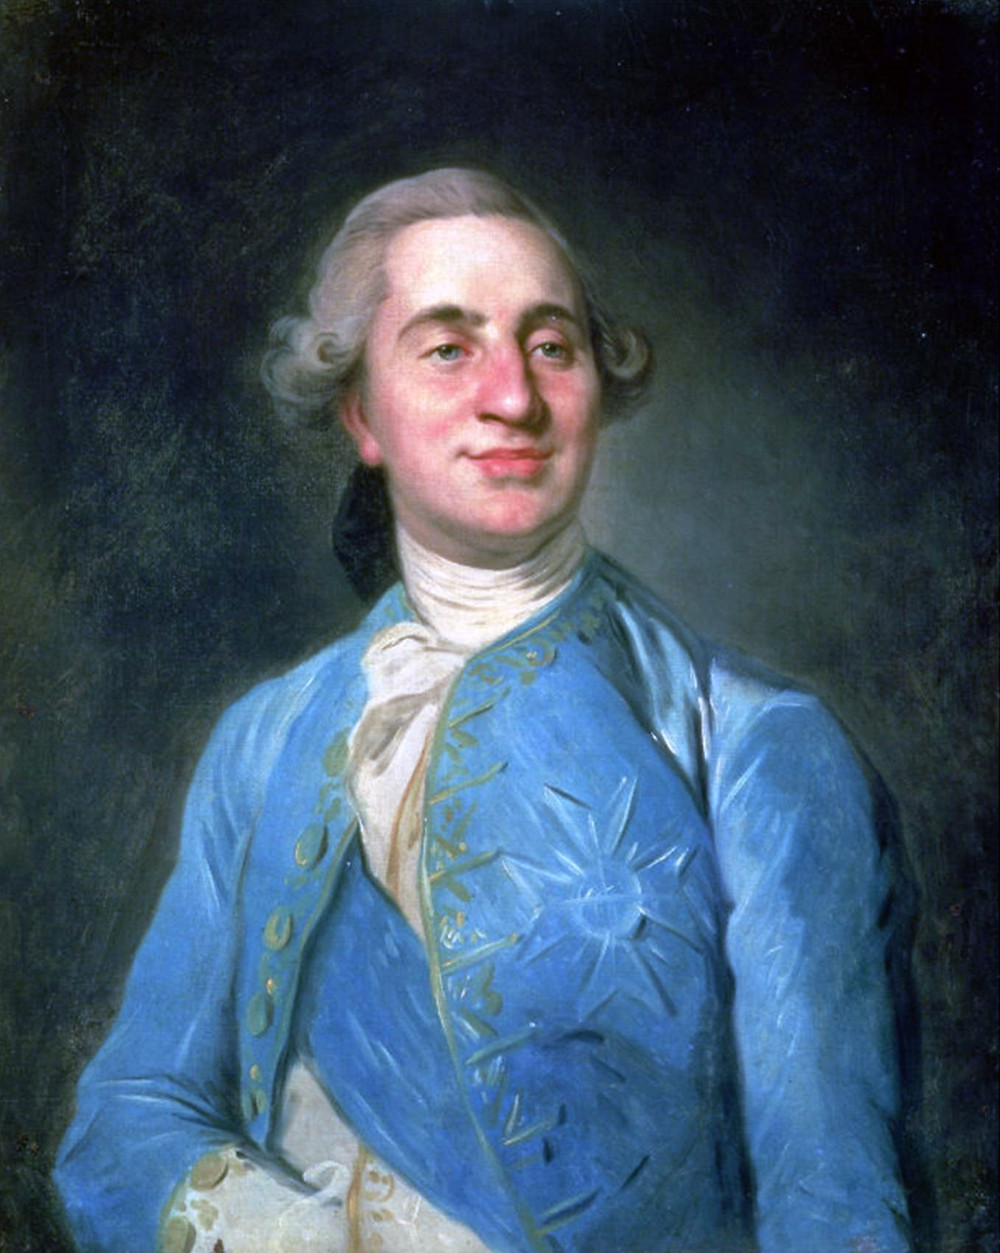 Louis XVI, looking rather smugger than his reputation